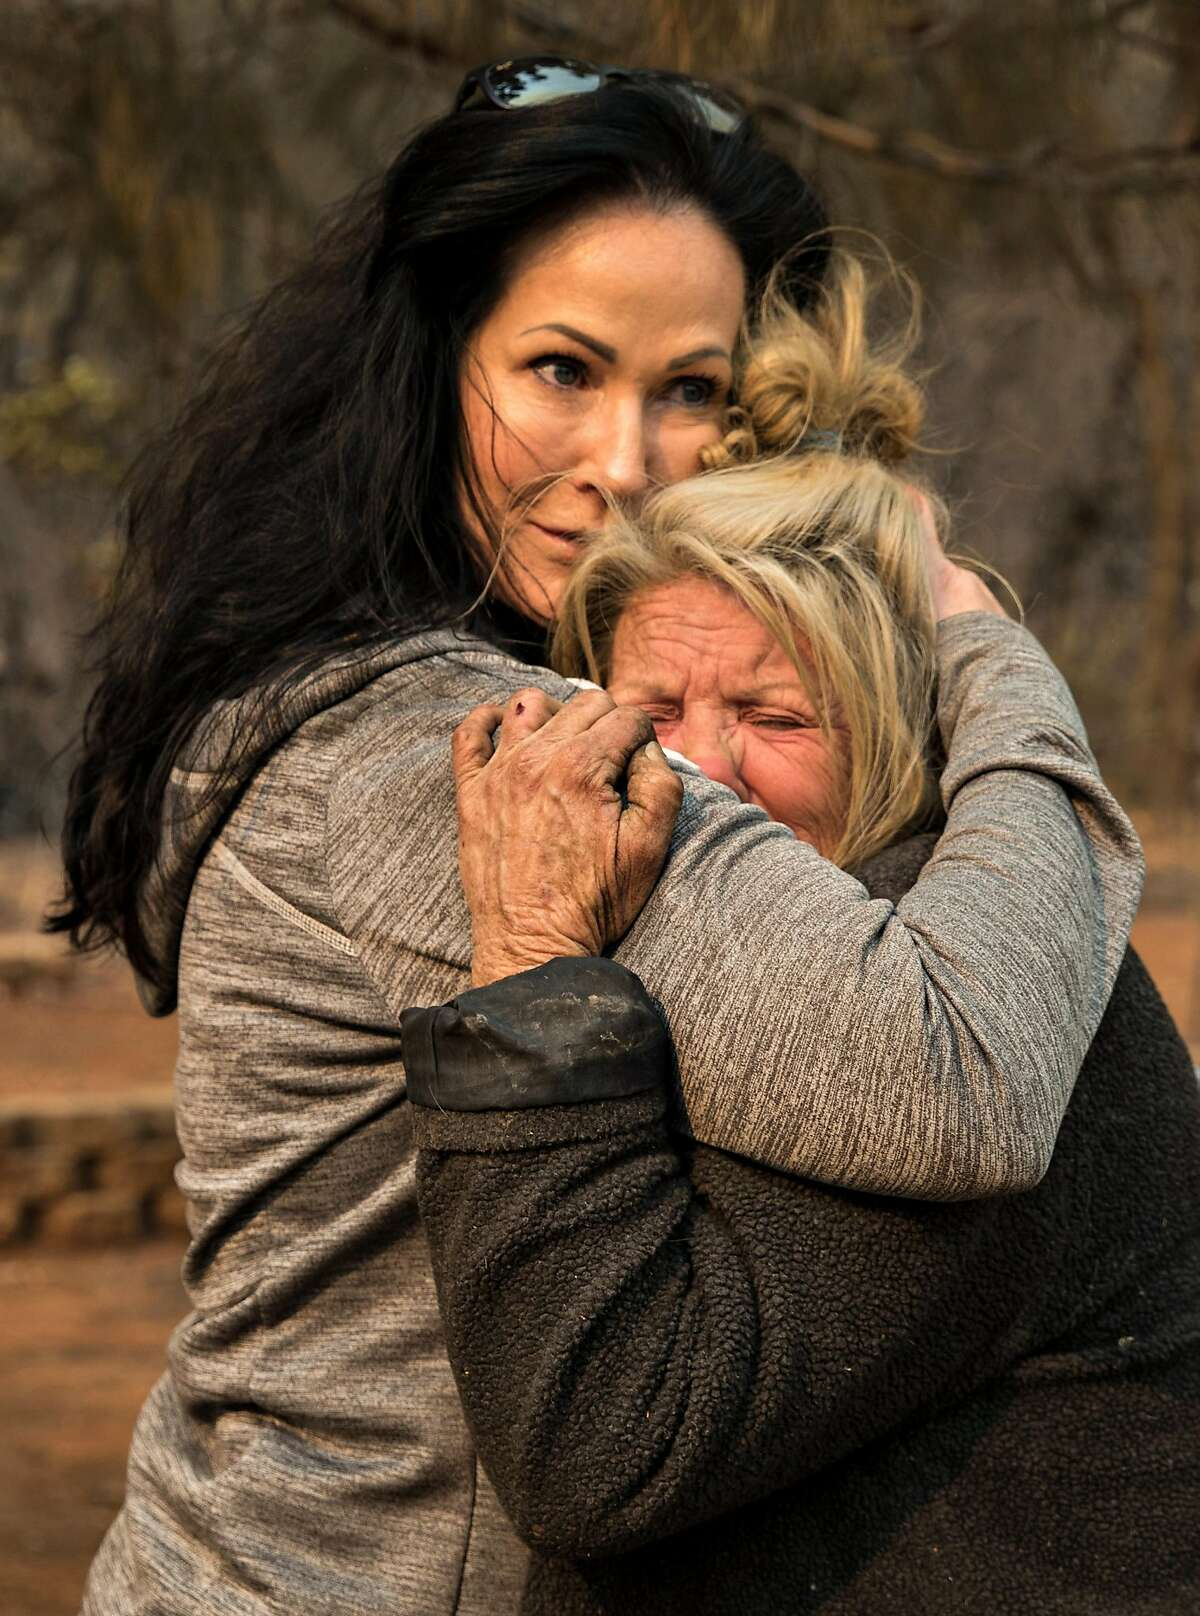 Animal volunteer evacuator Tamara Houston, left, comforts Cathy Fallon outside Fallon's home Sunday, Nov. 11, 2018. Fallon survived the Camp Fire while bunkering down in her home on Edgewood Lane after the Camp Fire ripped through the town of Paradise, Calif.